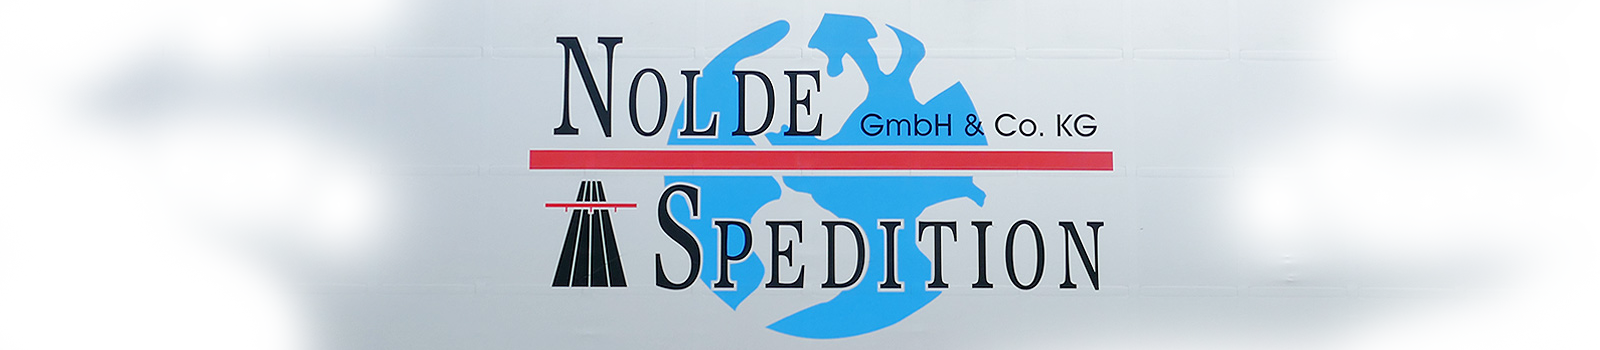 Spedition Nolde GmbH & CO.KG